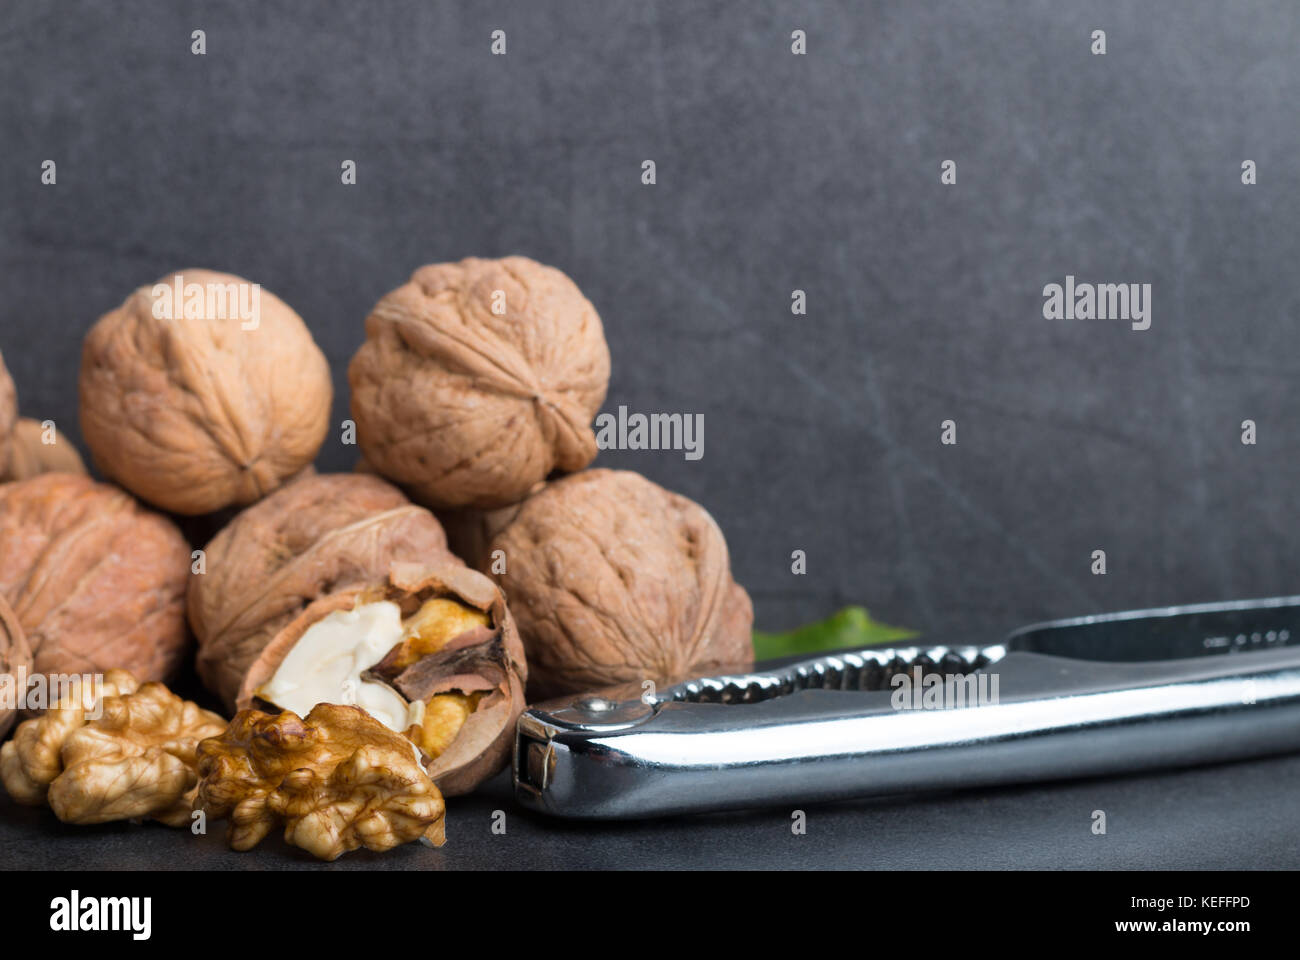 bio walnuts on a stone table with a nutcracker front view - Stock Image